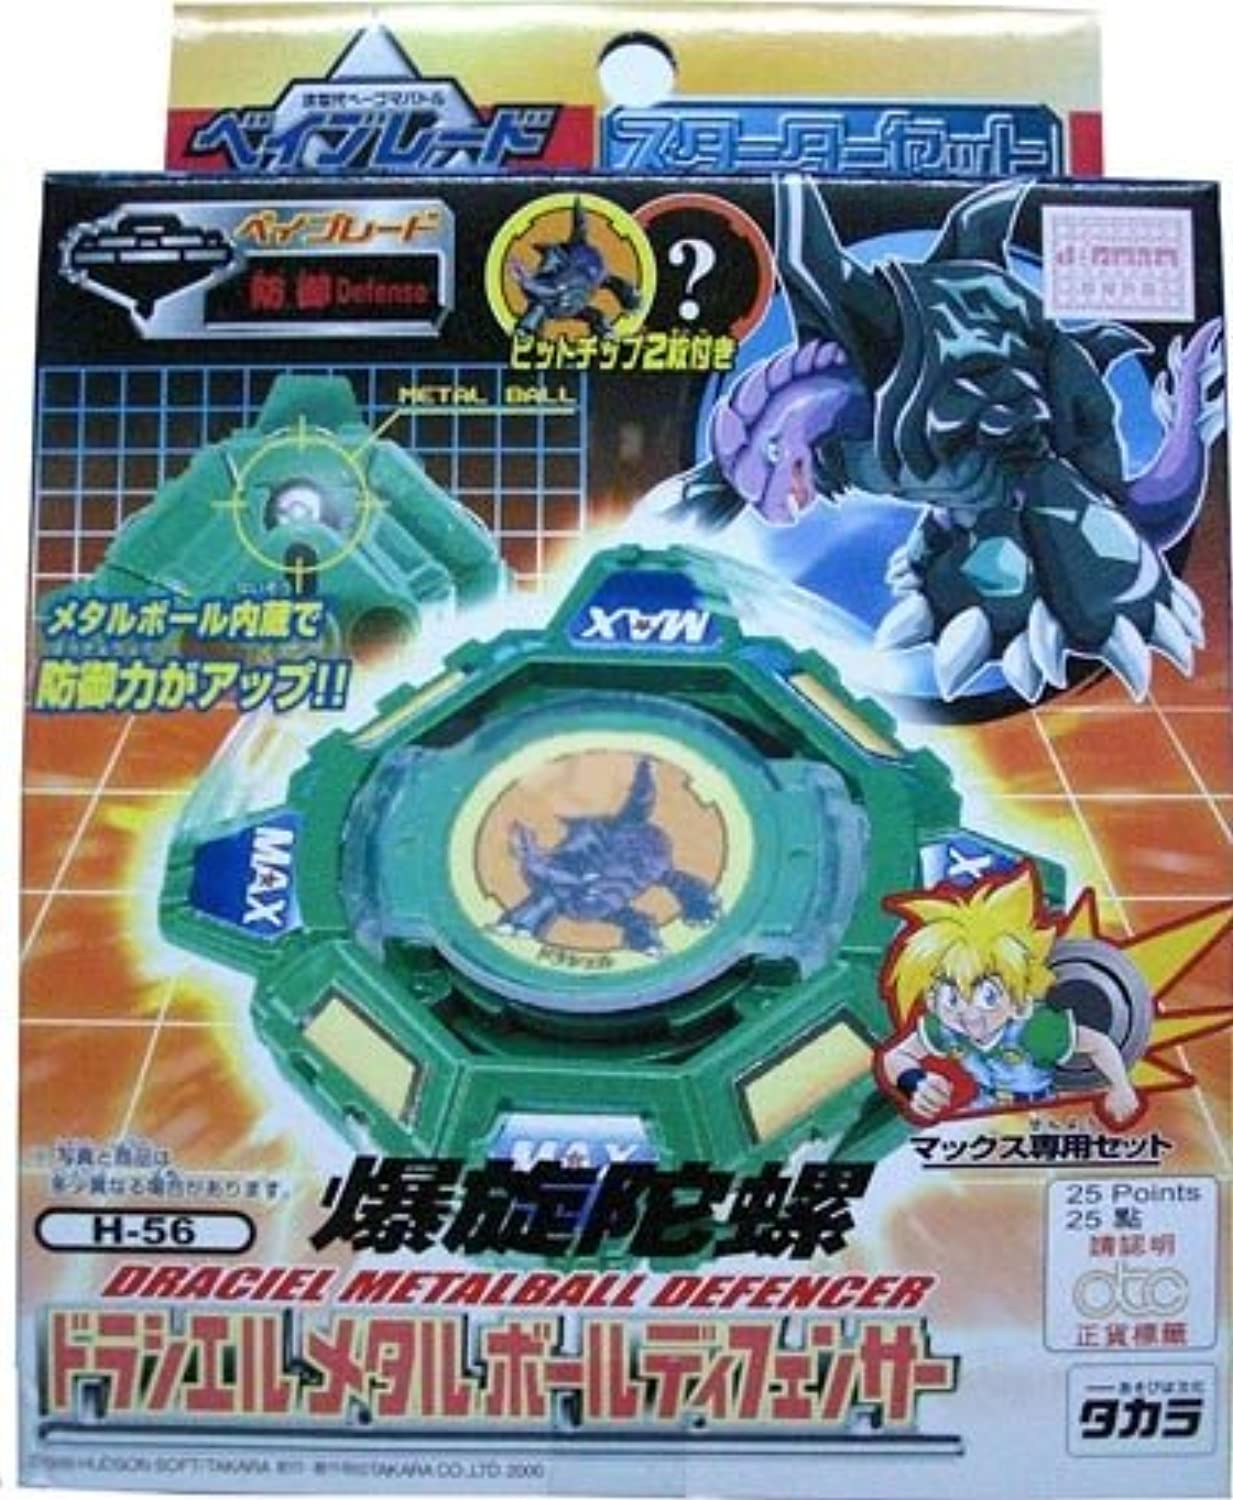 Takara Beyblade Metalball Defencer H56